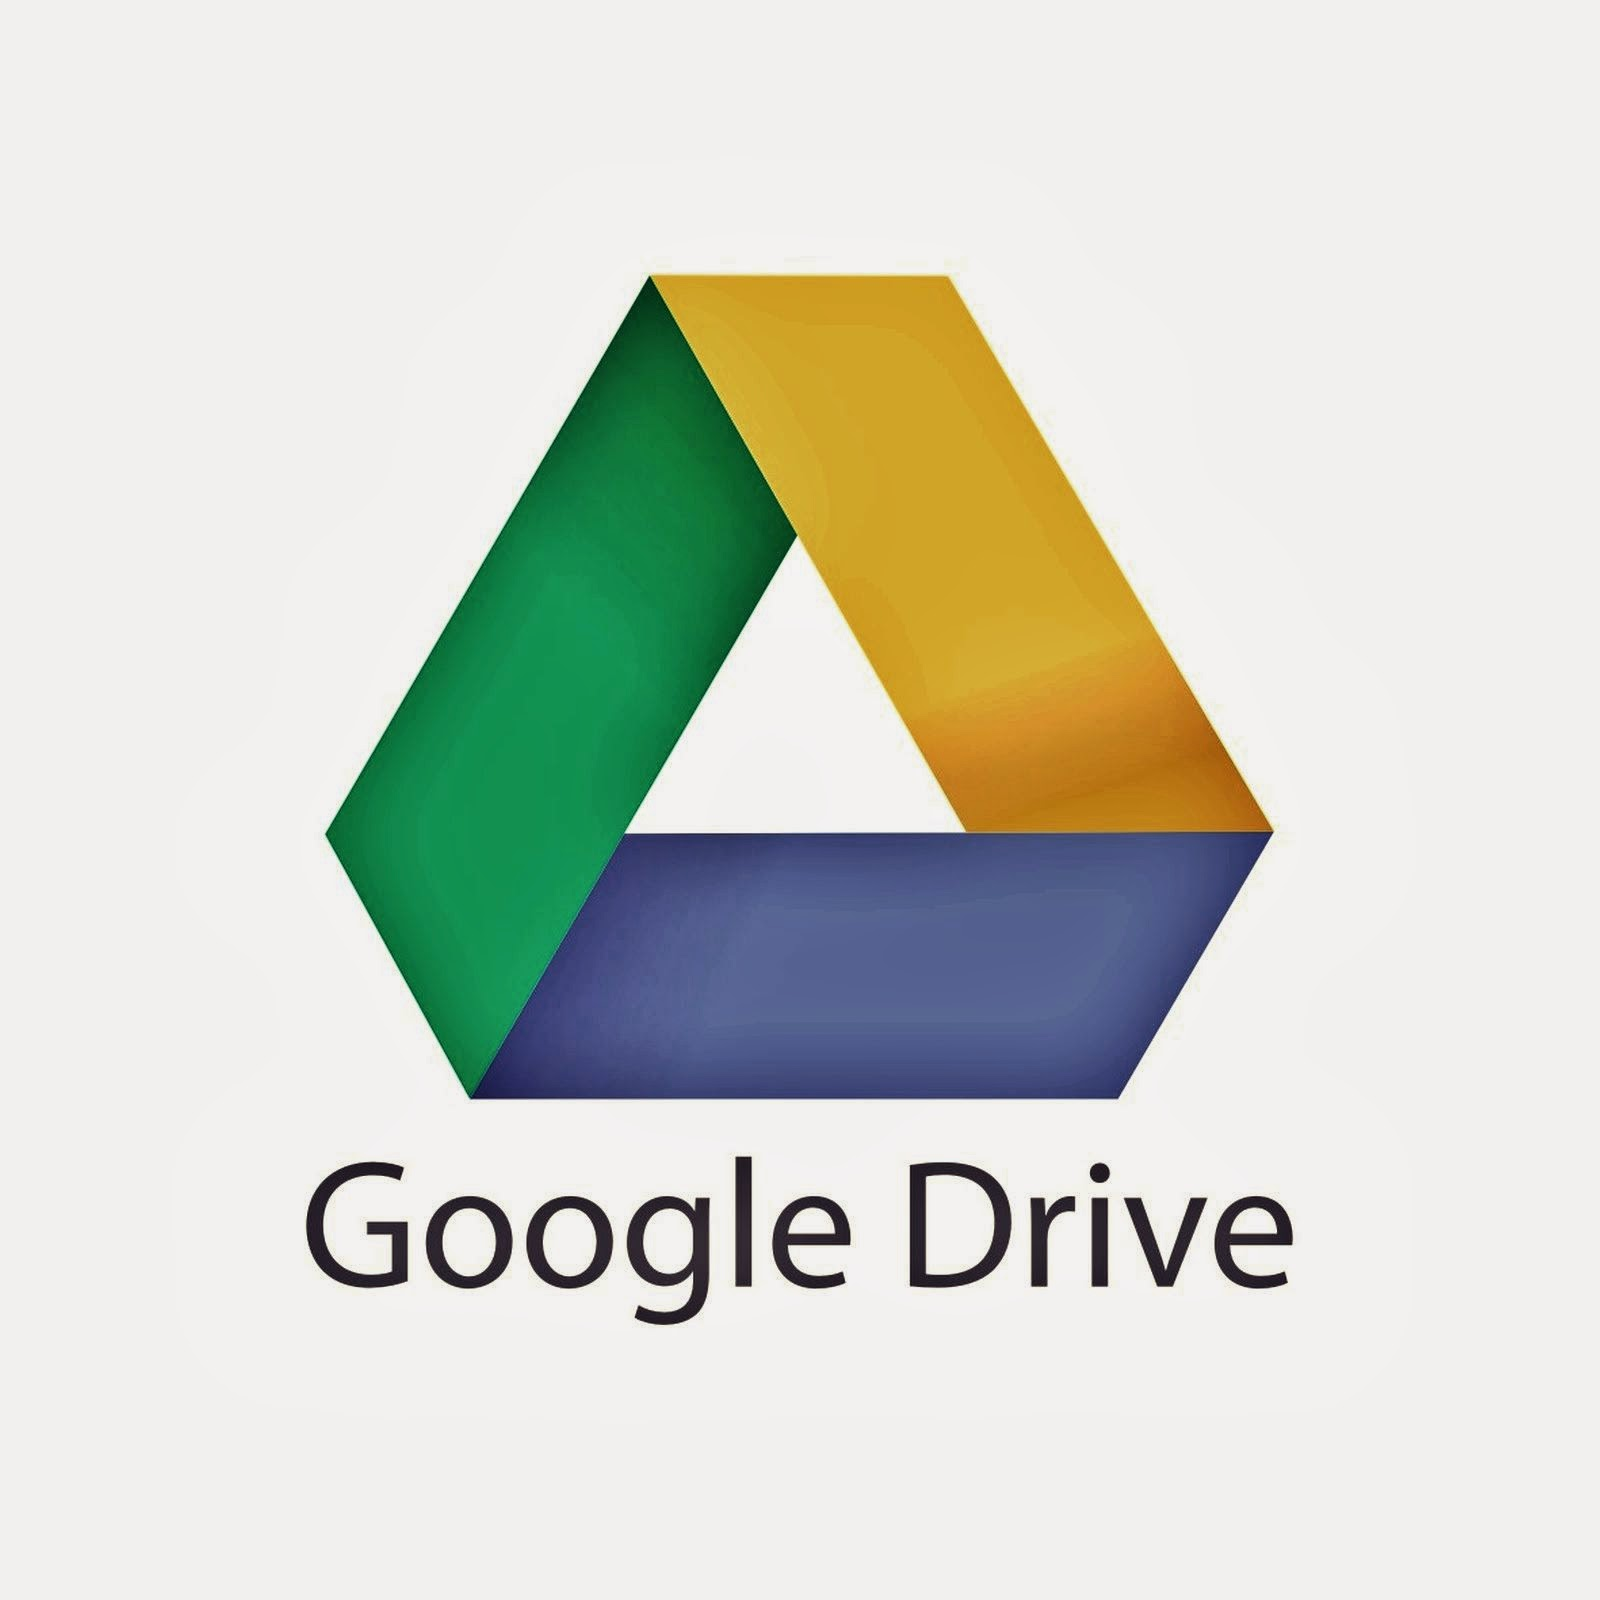 Google Drive, decrease in rates of premium offerings, premium service of storage, sharing files online, internet, decrease in rates,